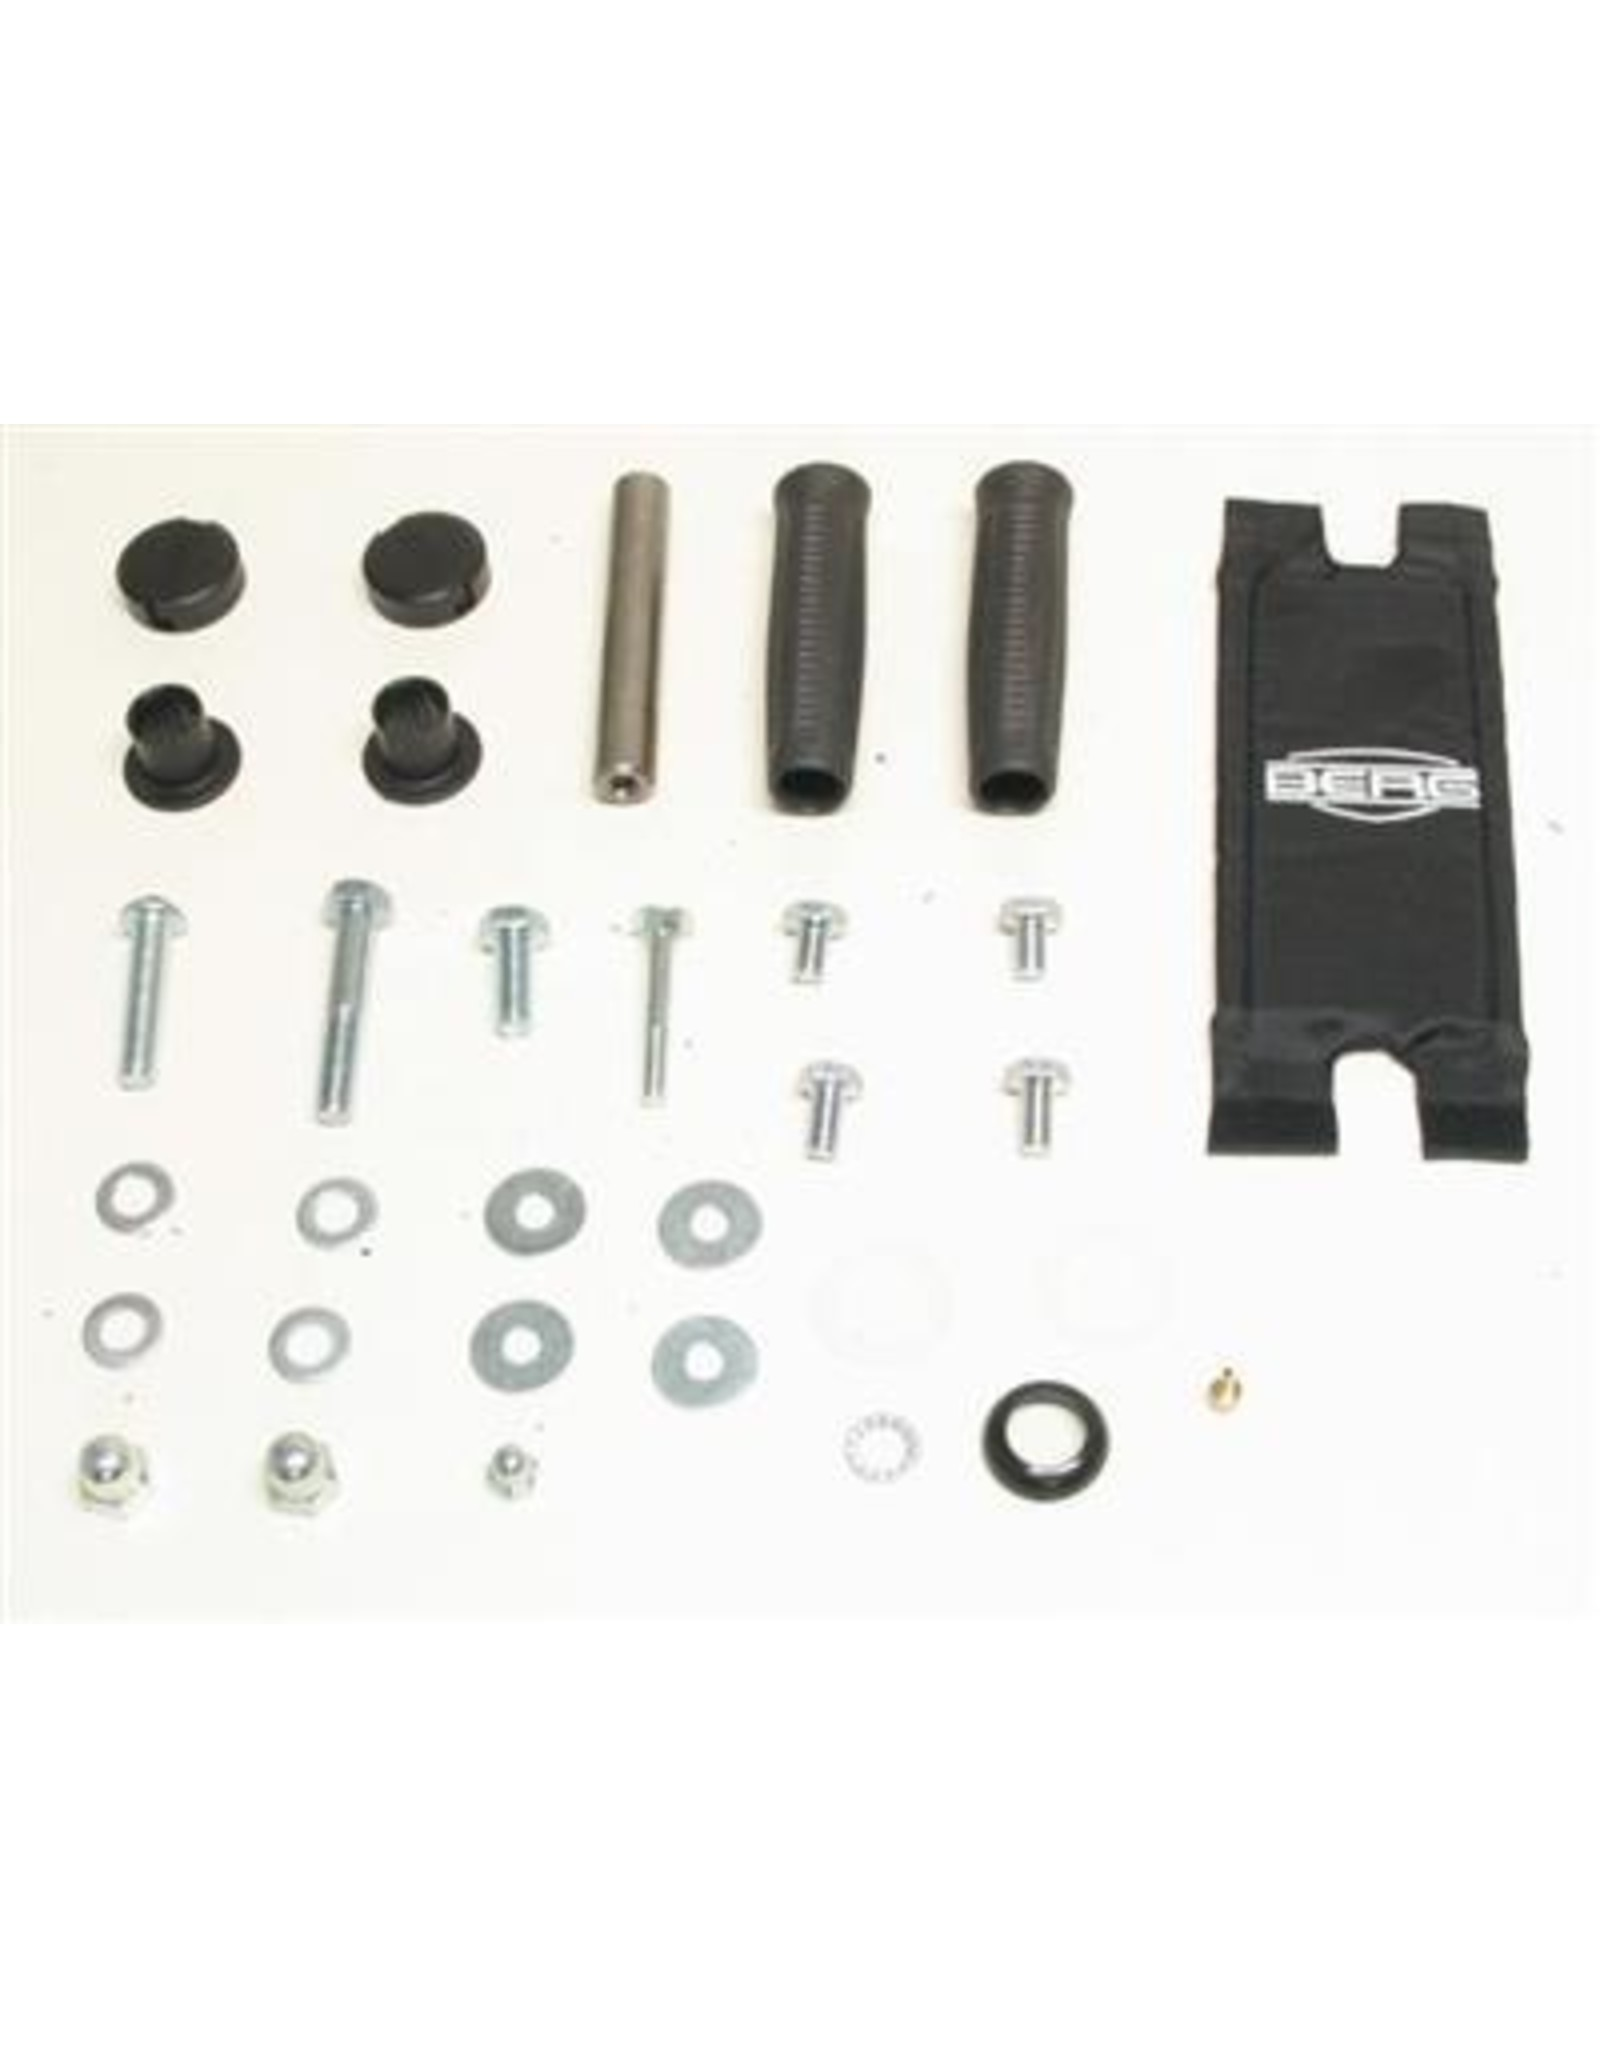 BERG BERG Bolts and Grips for Chopper